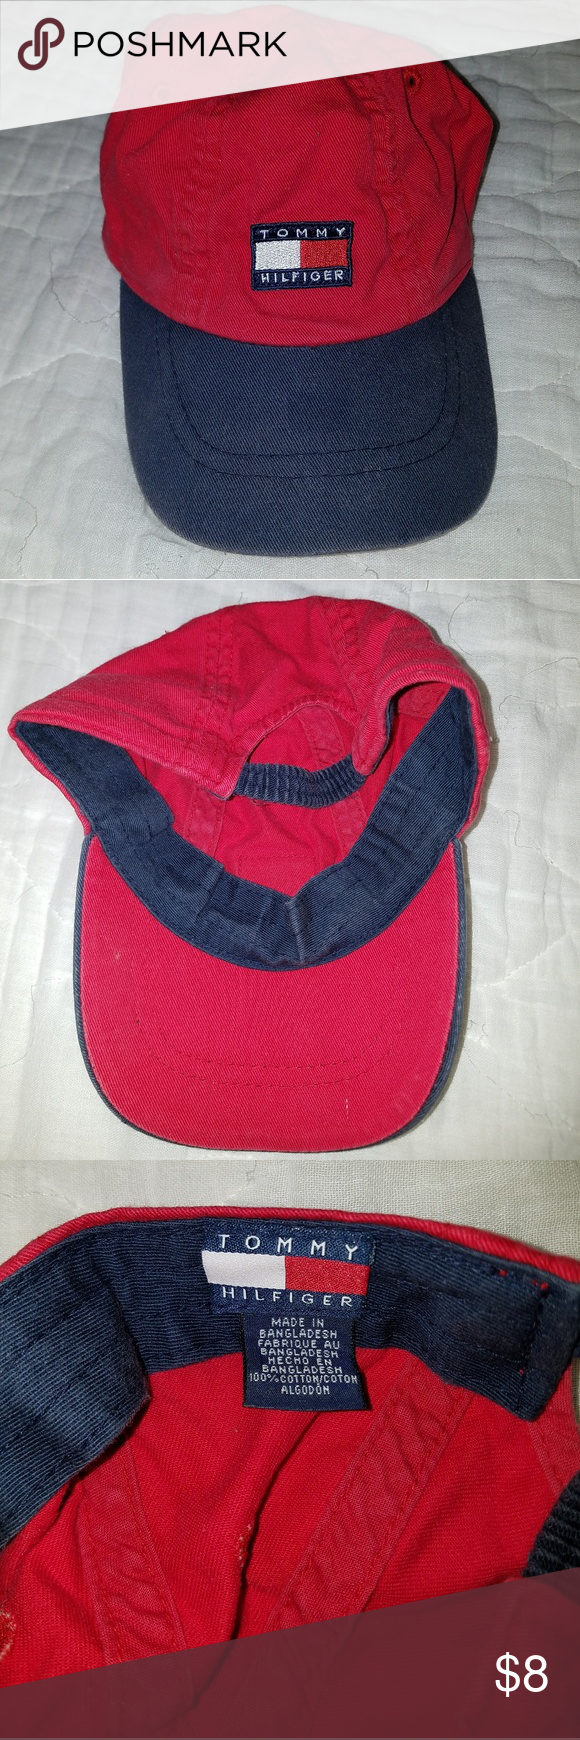 Baby Toddler Tommy Hilfiger Hat Tommy Hilfiger Hat Baby Toddler size (6